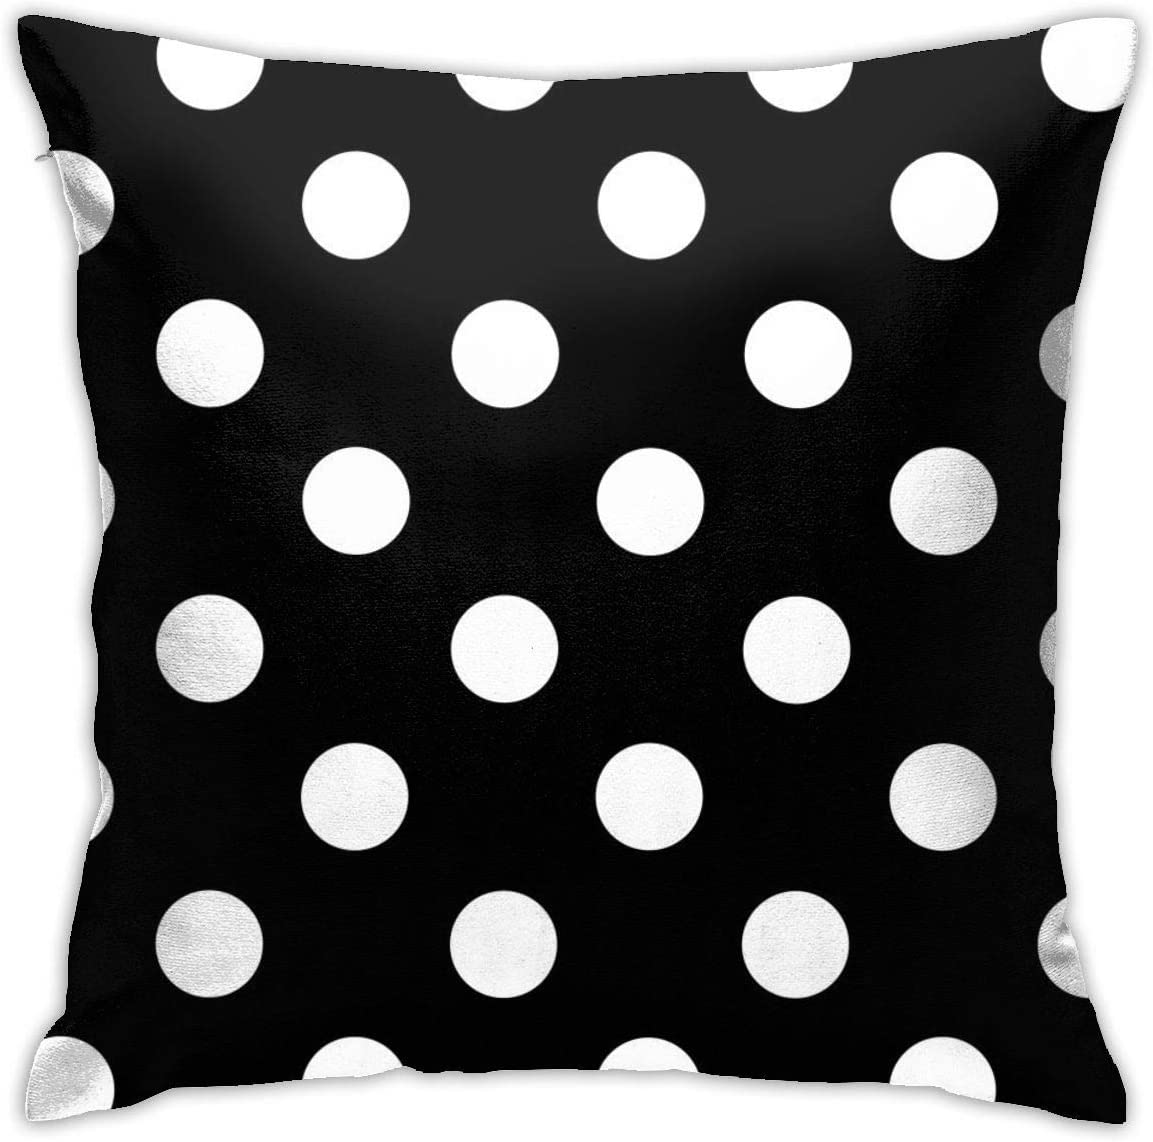 Amazon Com Antvinoler Black White Bohemian Polka Dot Pillows Case Soft Throw Pillow Double Sided Digital Printing Couch Pillowcase Square 45cm45cm Home Kitchen